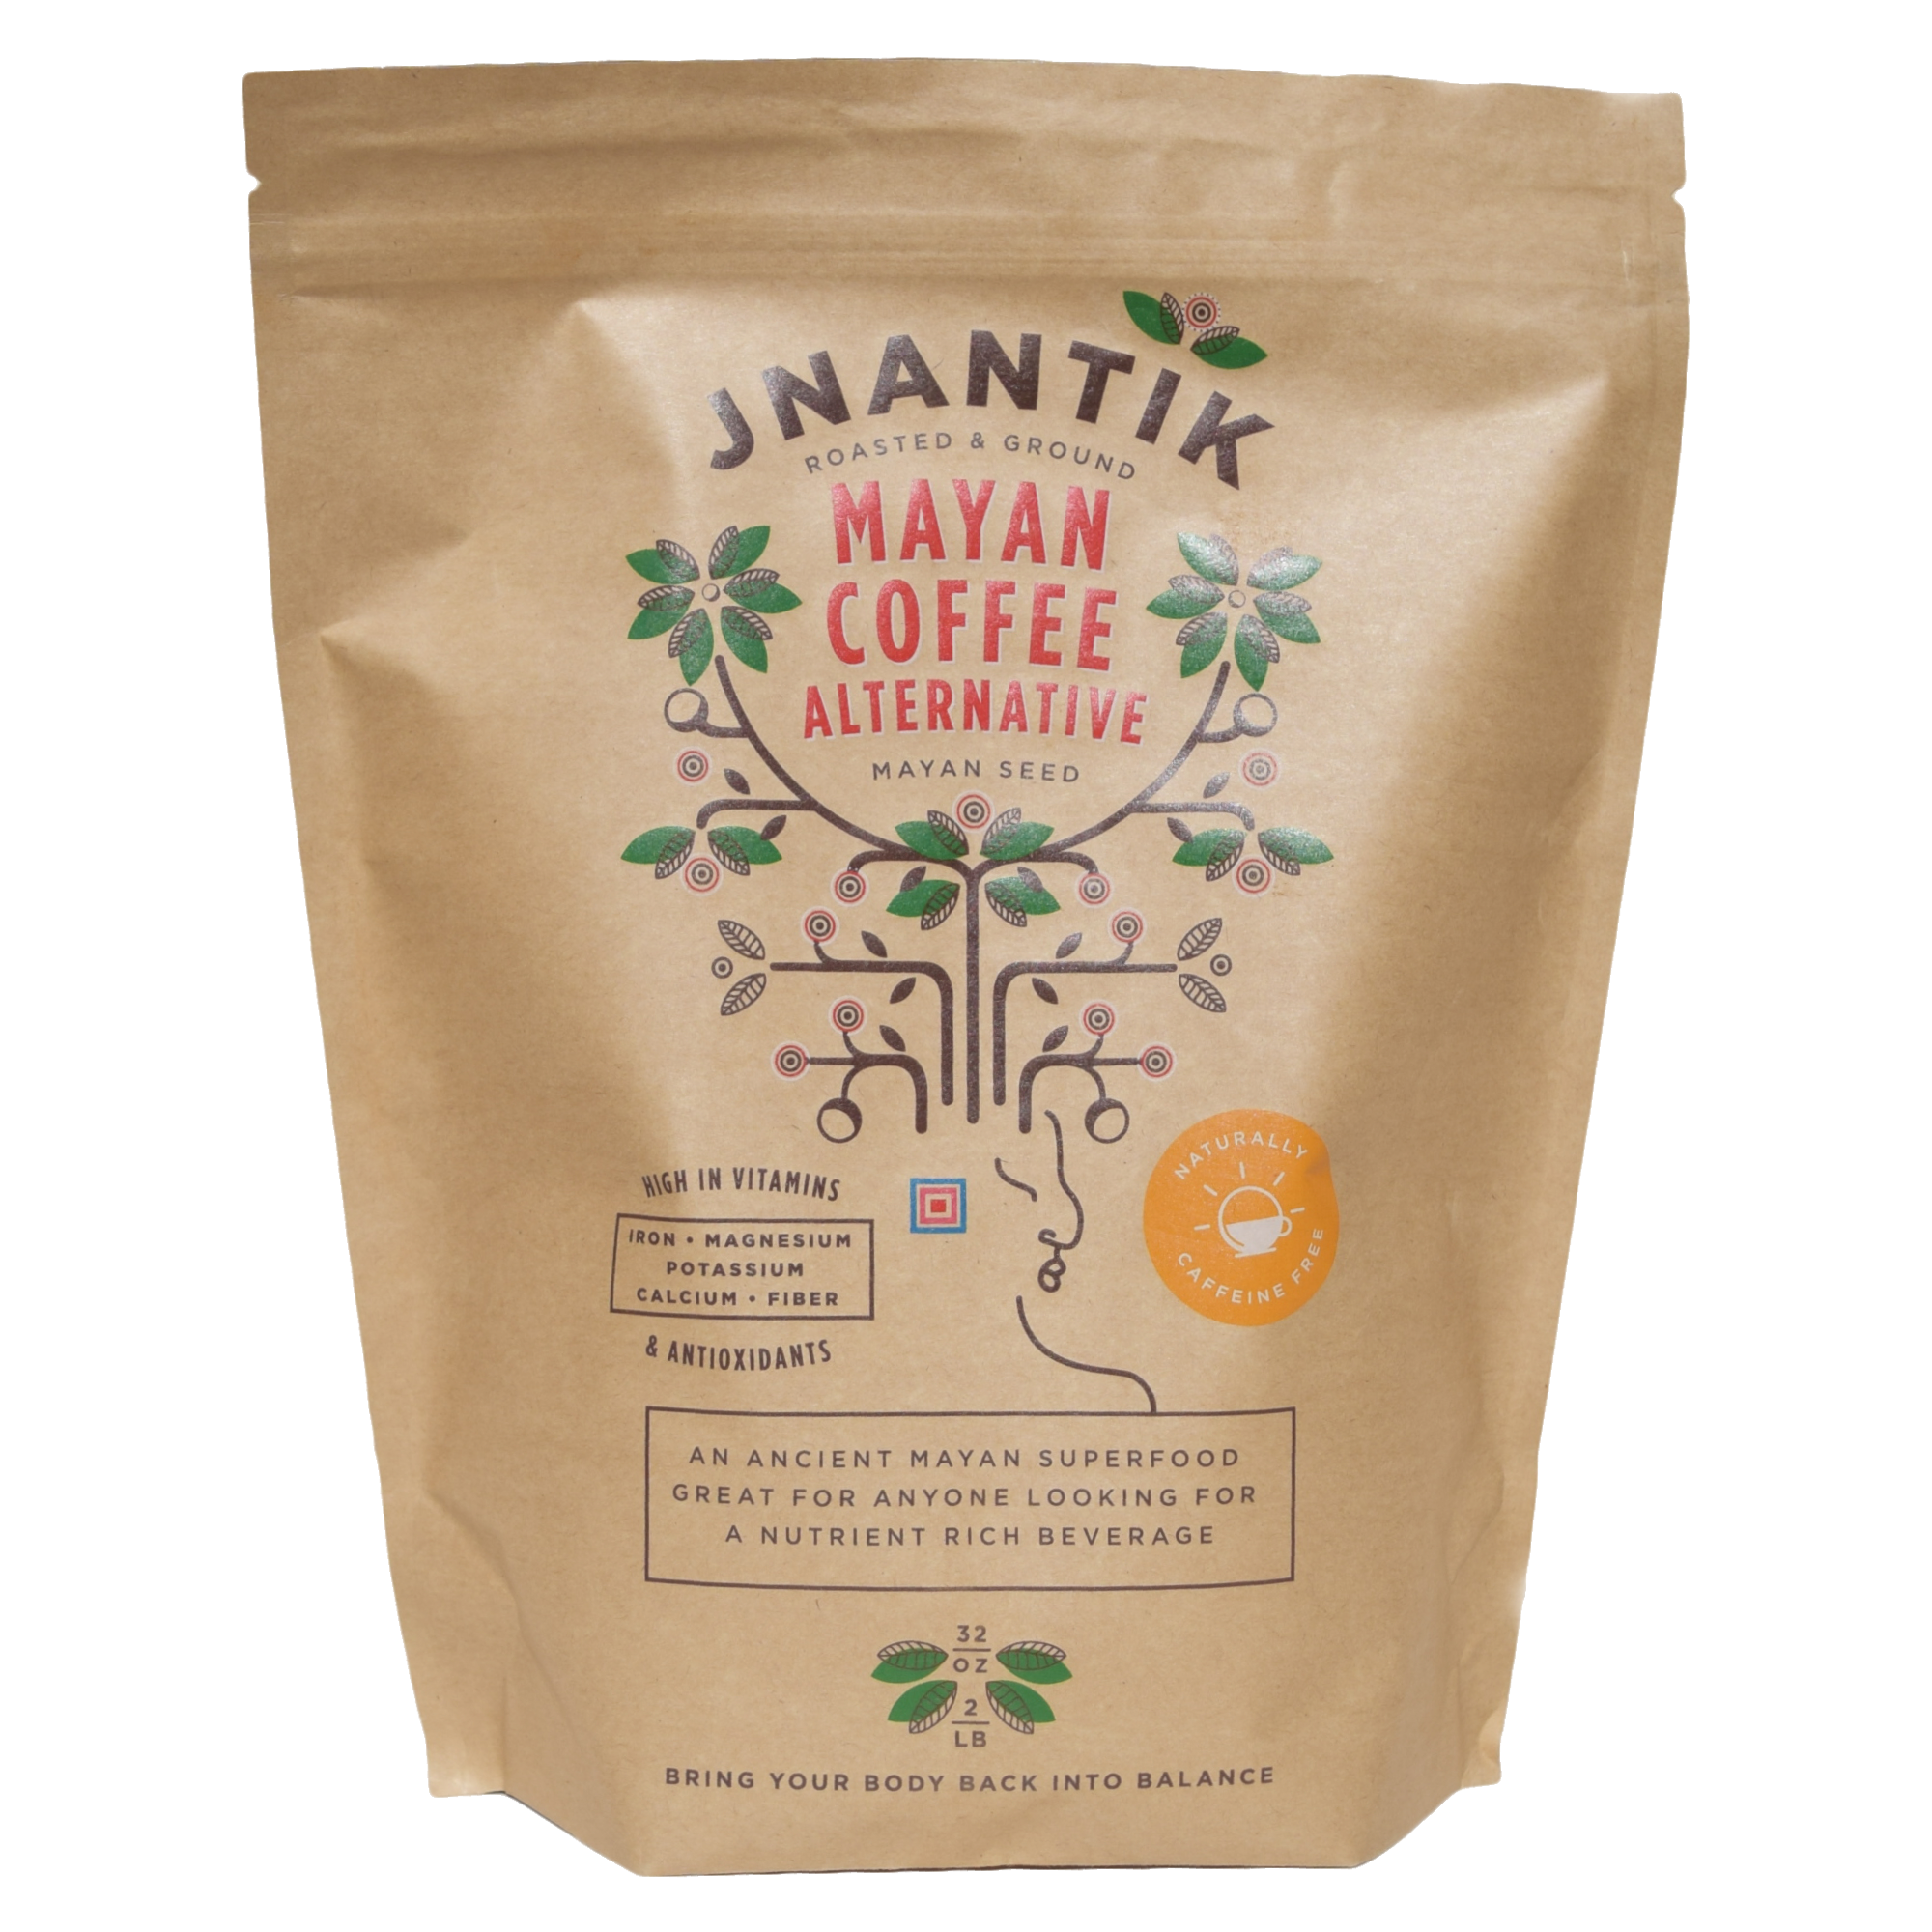 Jnantik Maya Seed Coffee Alternative 2lb bag